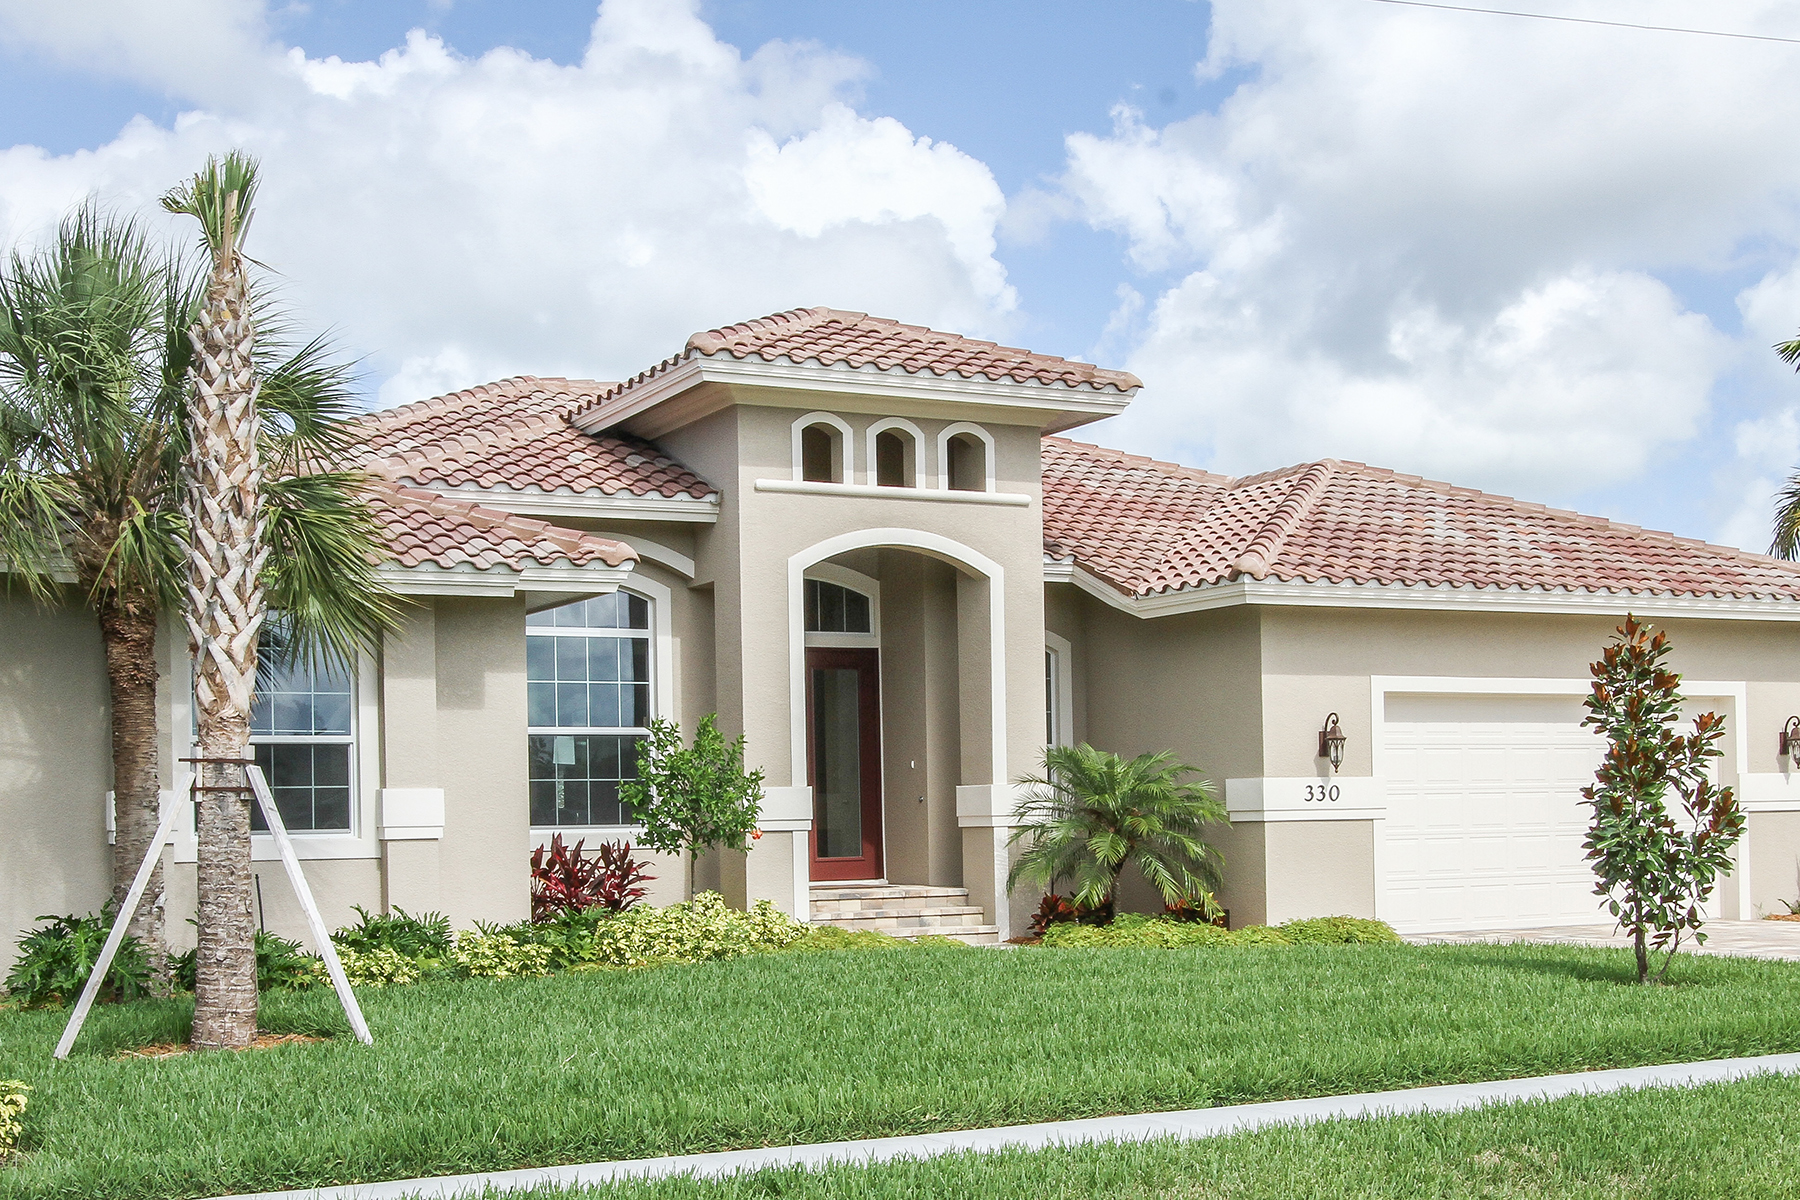 Single Family Home for Rent at 330 Hazelcrest St , Marco Island, FL 34145 330 Hazelcrest St, Marco Island, Florida 34145 United States